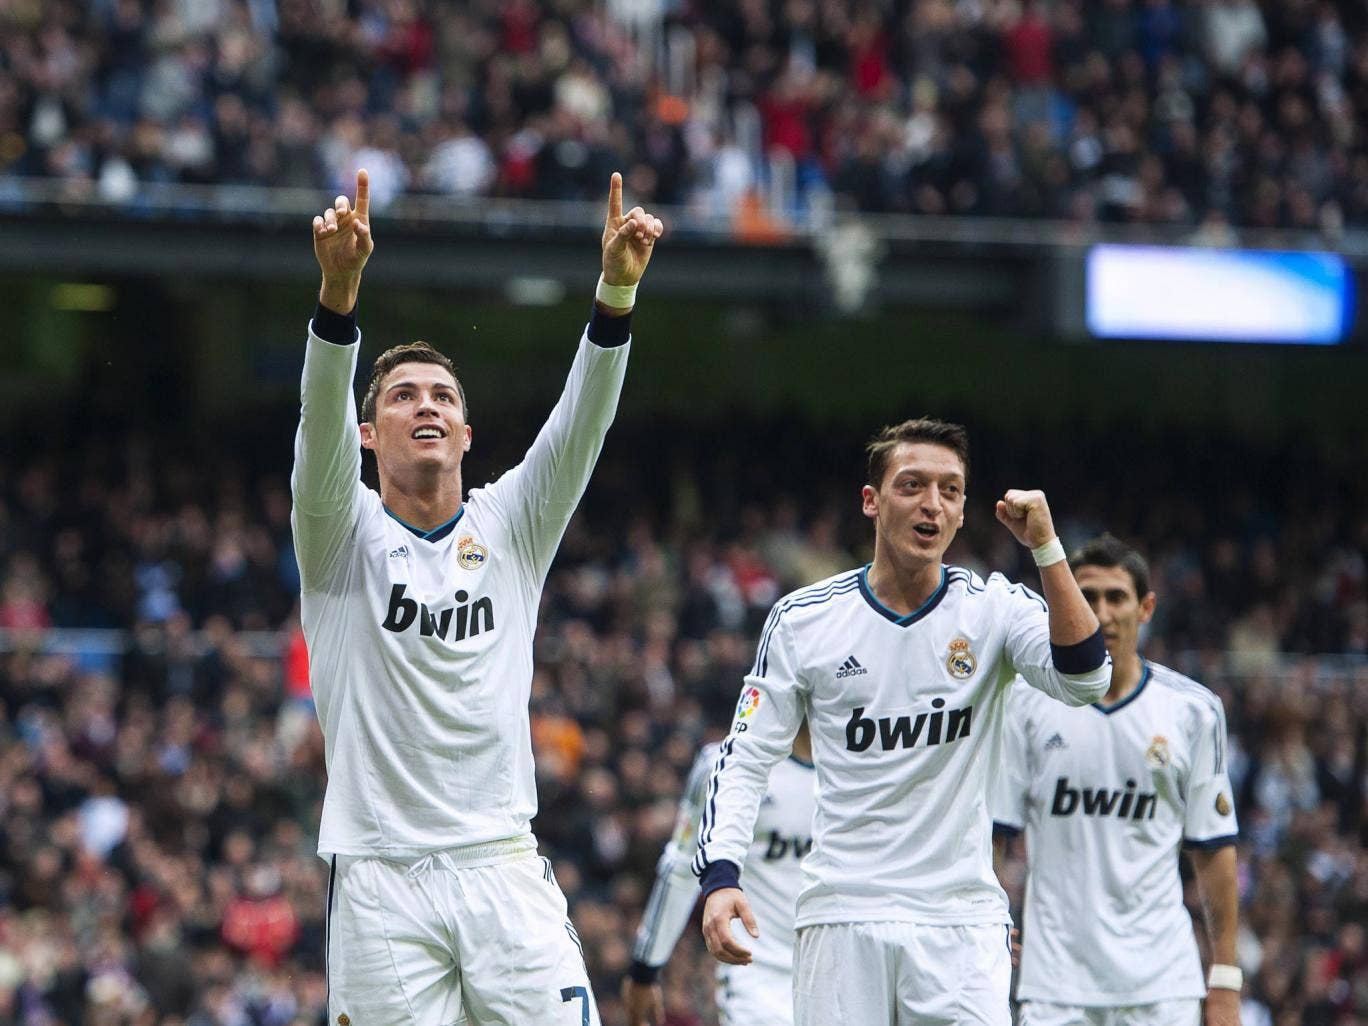 <b>v Getafe, La Liga, 27 January 2012</b><br/> A blistering 10 minute spell between the 62nd and 72 minute saw CR7 claim his first hat-trick of 2013. Jose Mourinho was kind enough to give him a break after his third, which was scored from the penalty spot